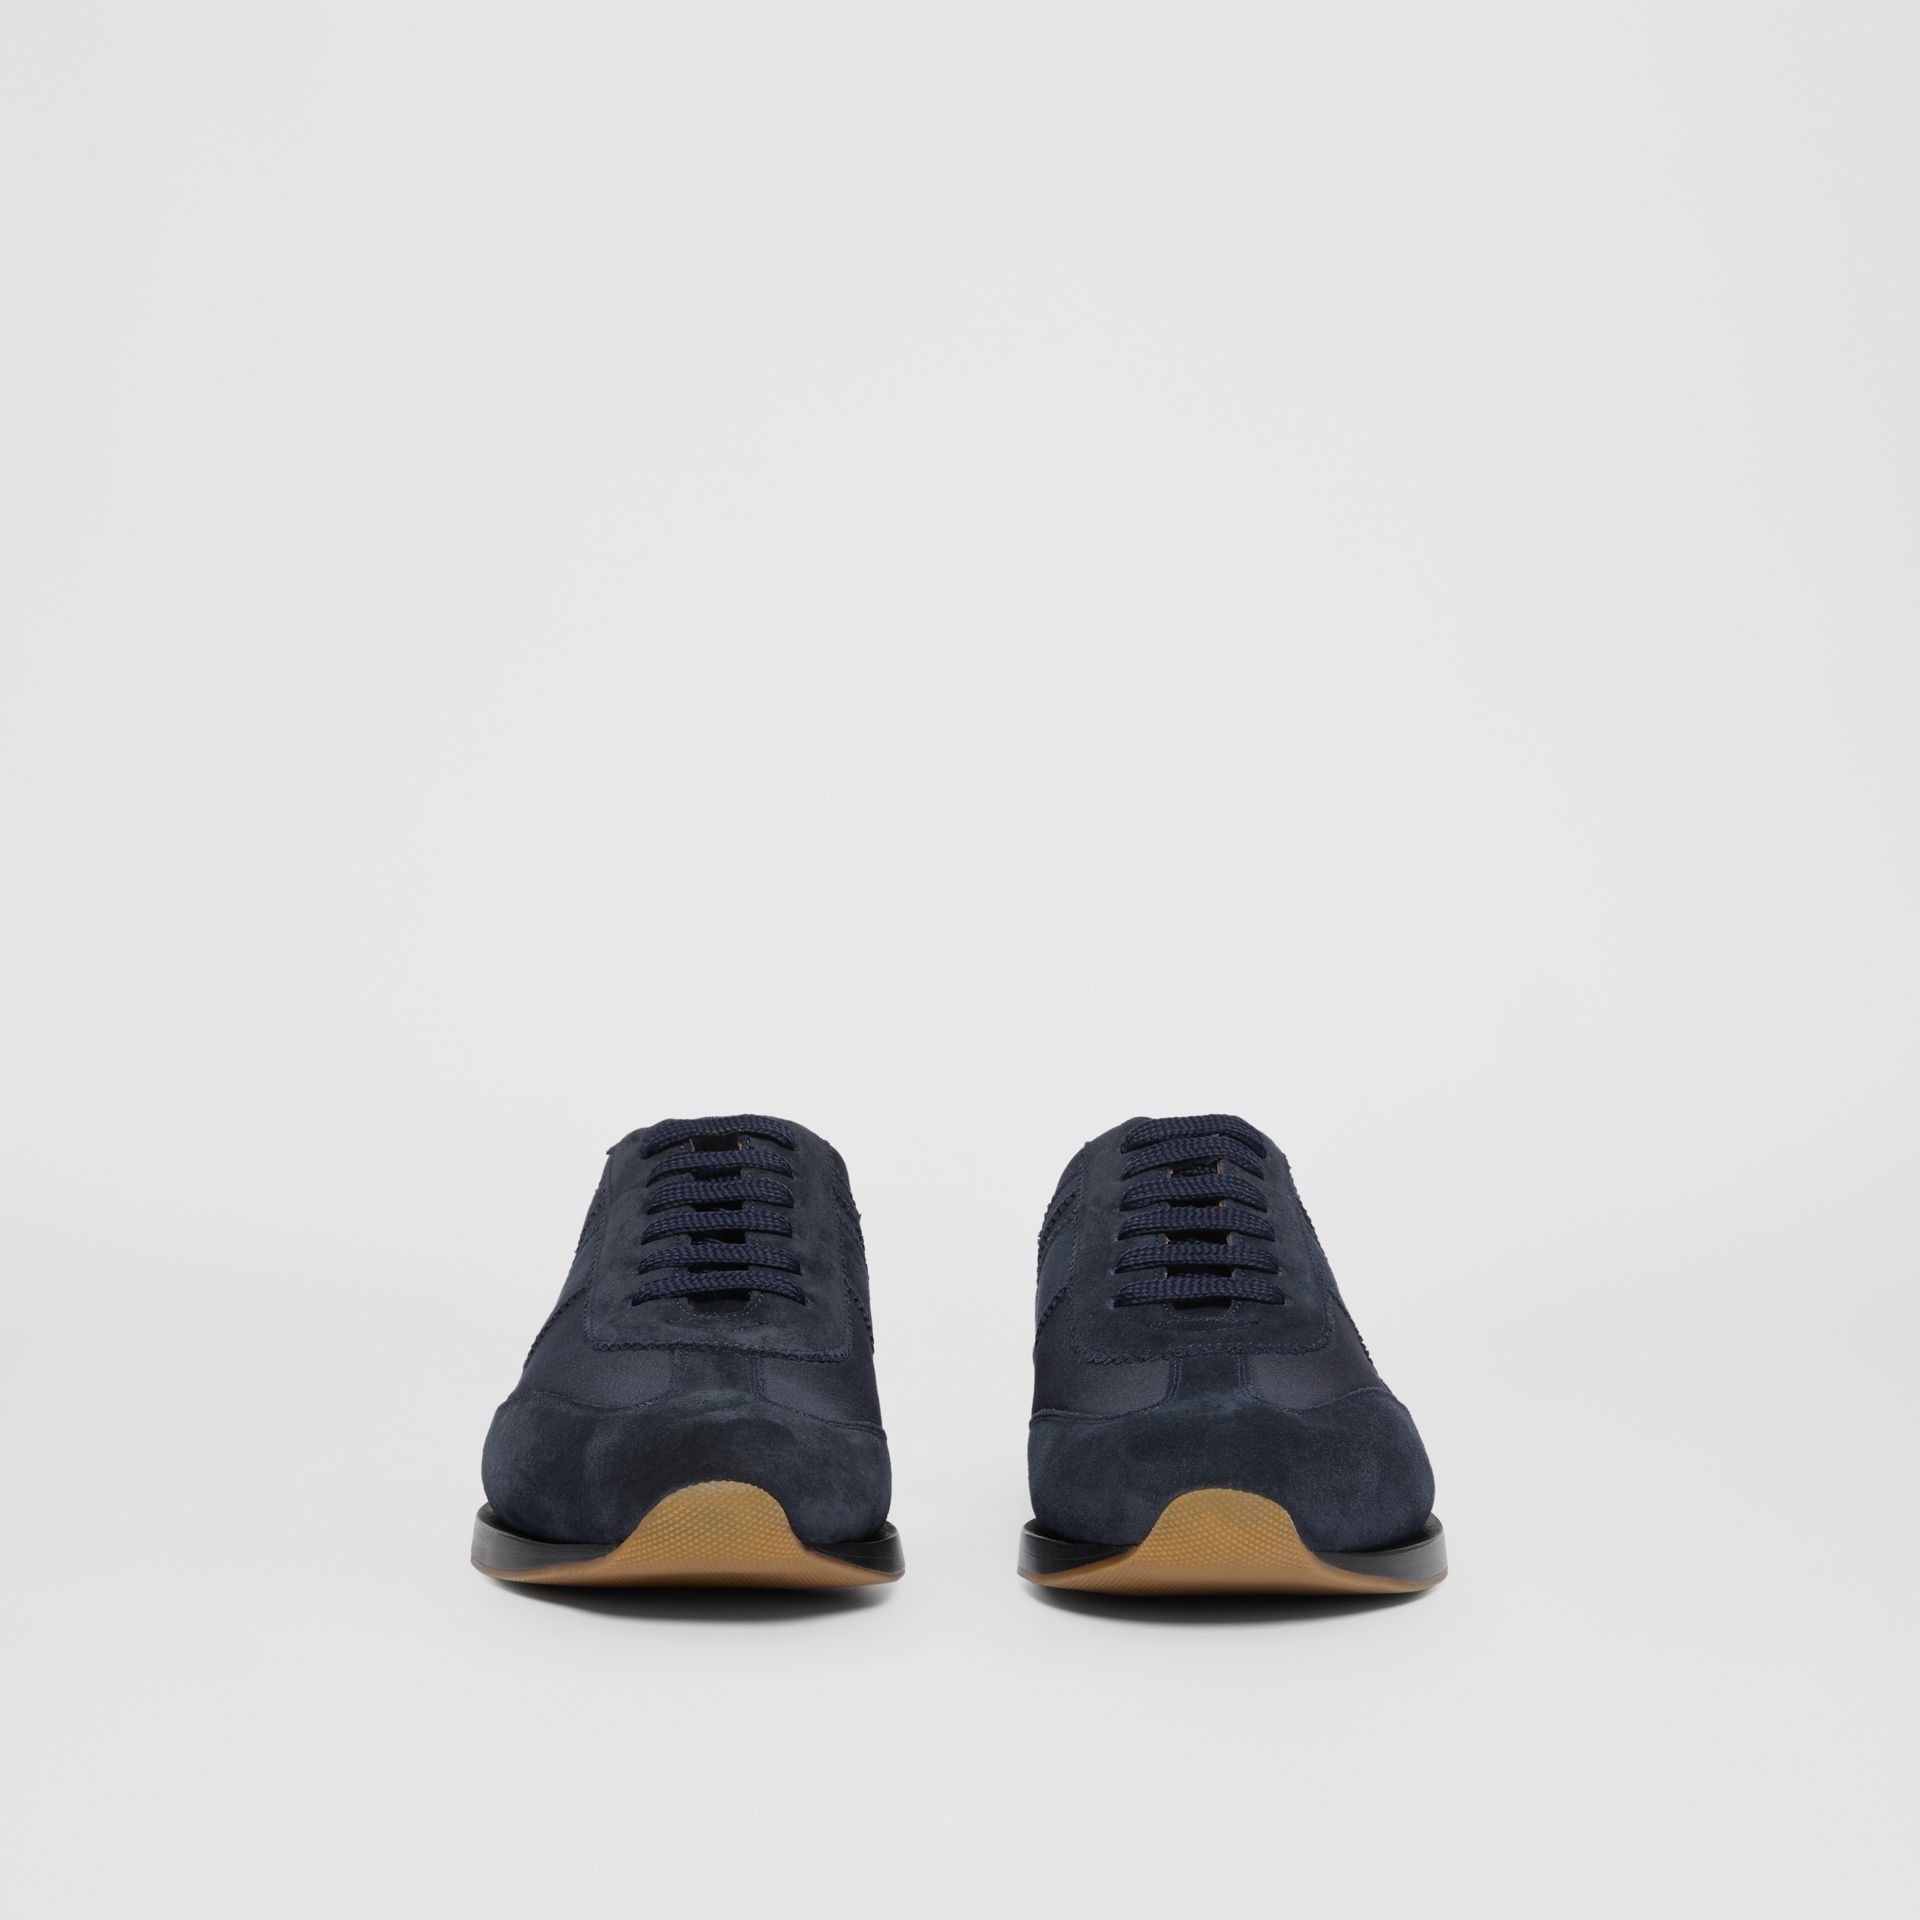 Neoprene Panel Suede Lace-up Shoes in Navy - Men | Burberry - gallery image 2